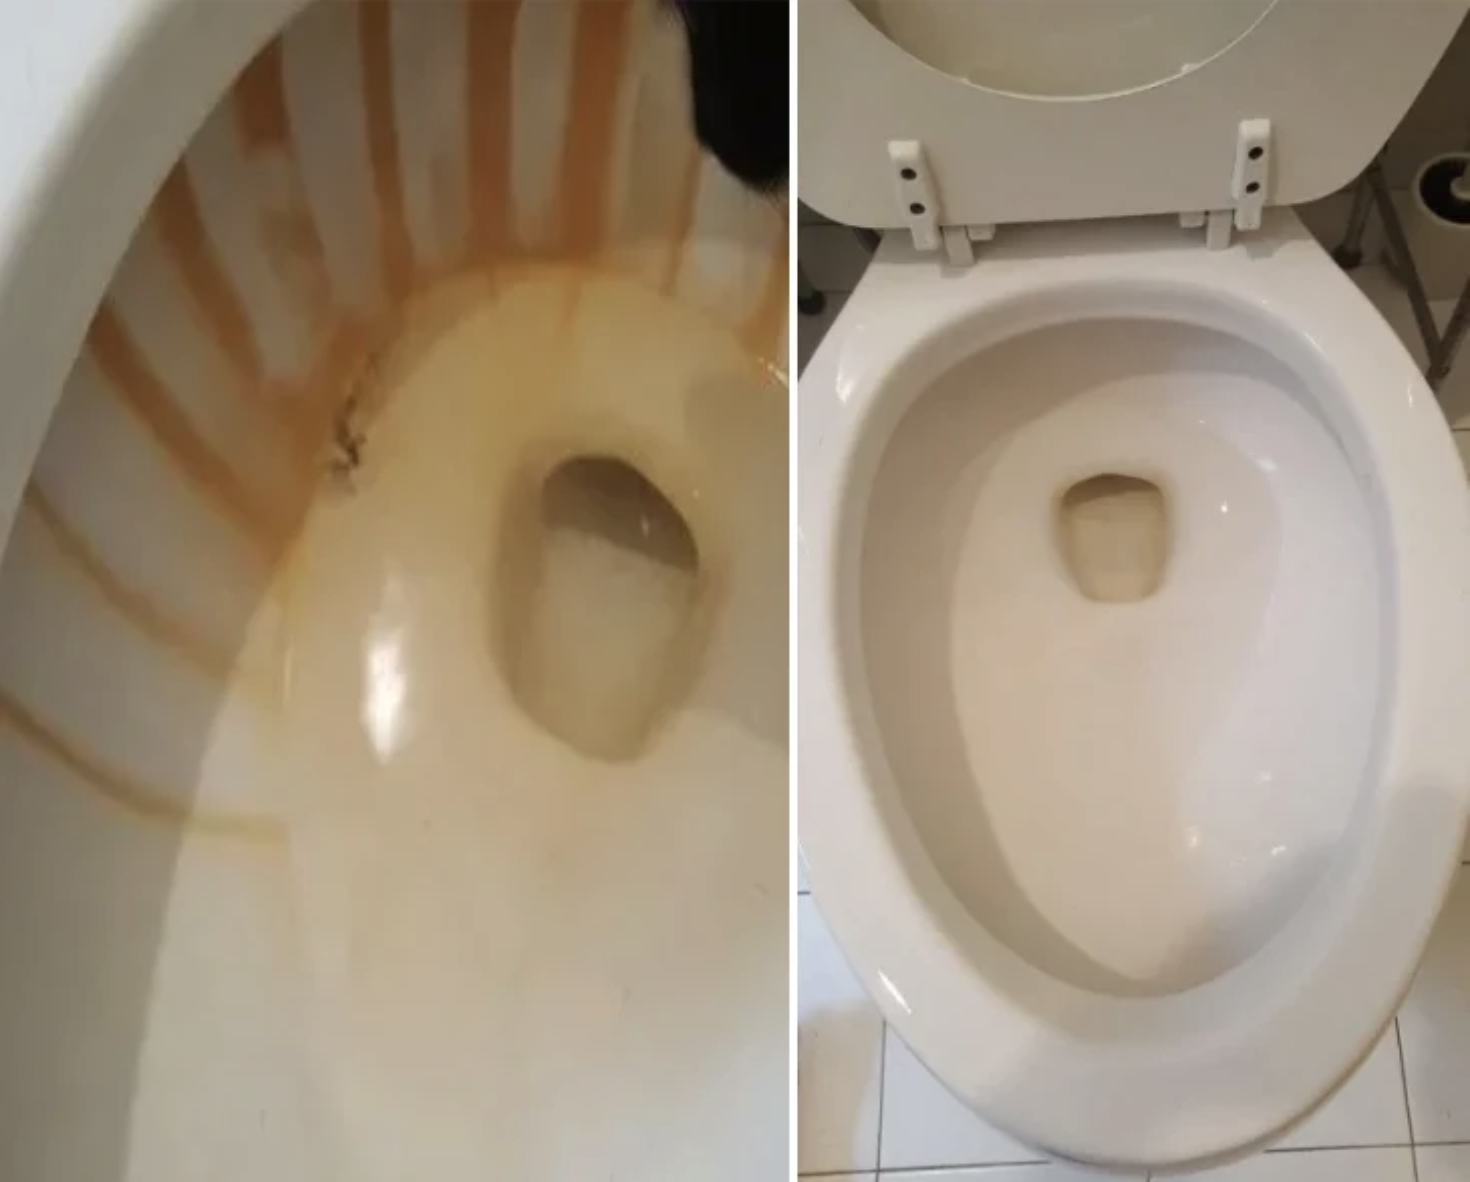 On the left: A review image of a toilet with many rust-colored hard water stains; on the right: The same toilet sparkling clean